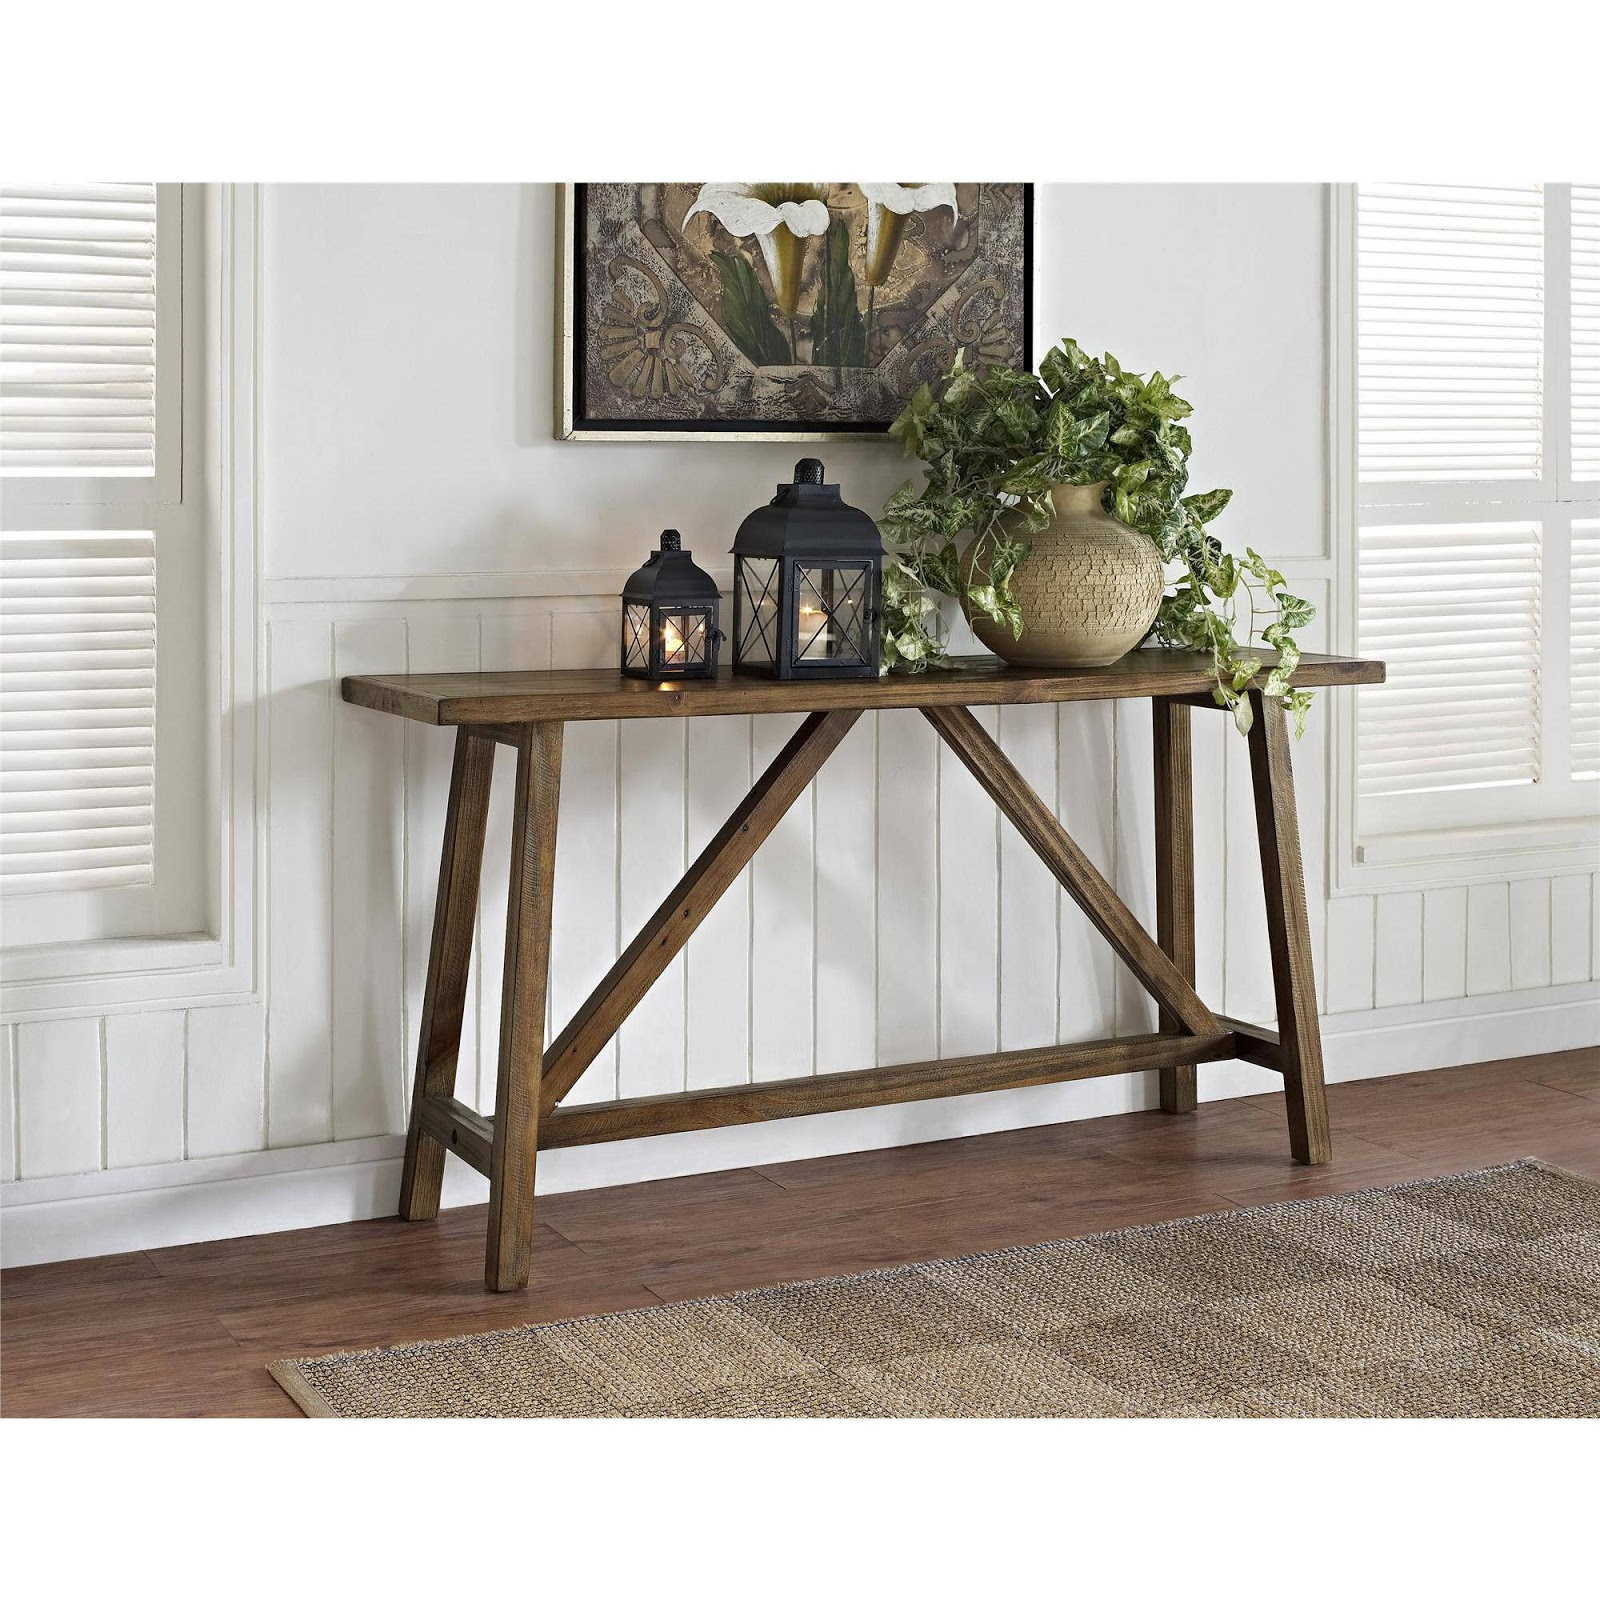 Rustic wood contemporary console table